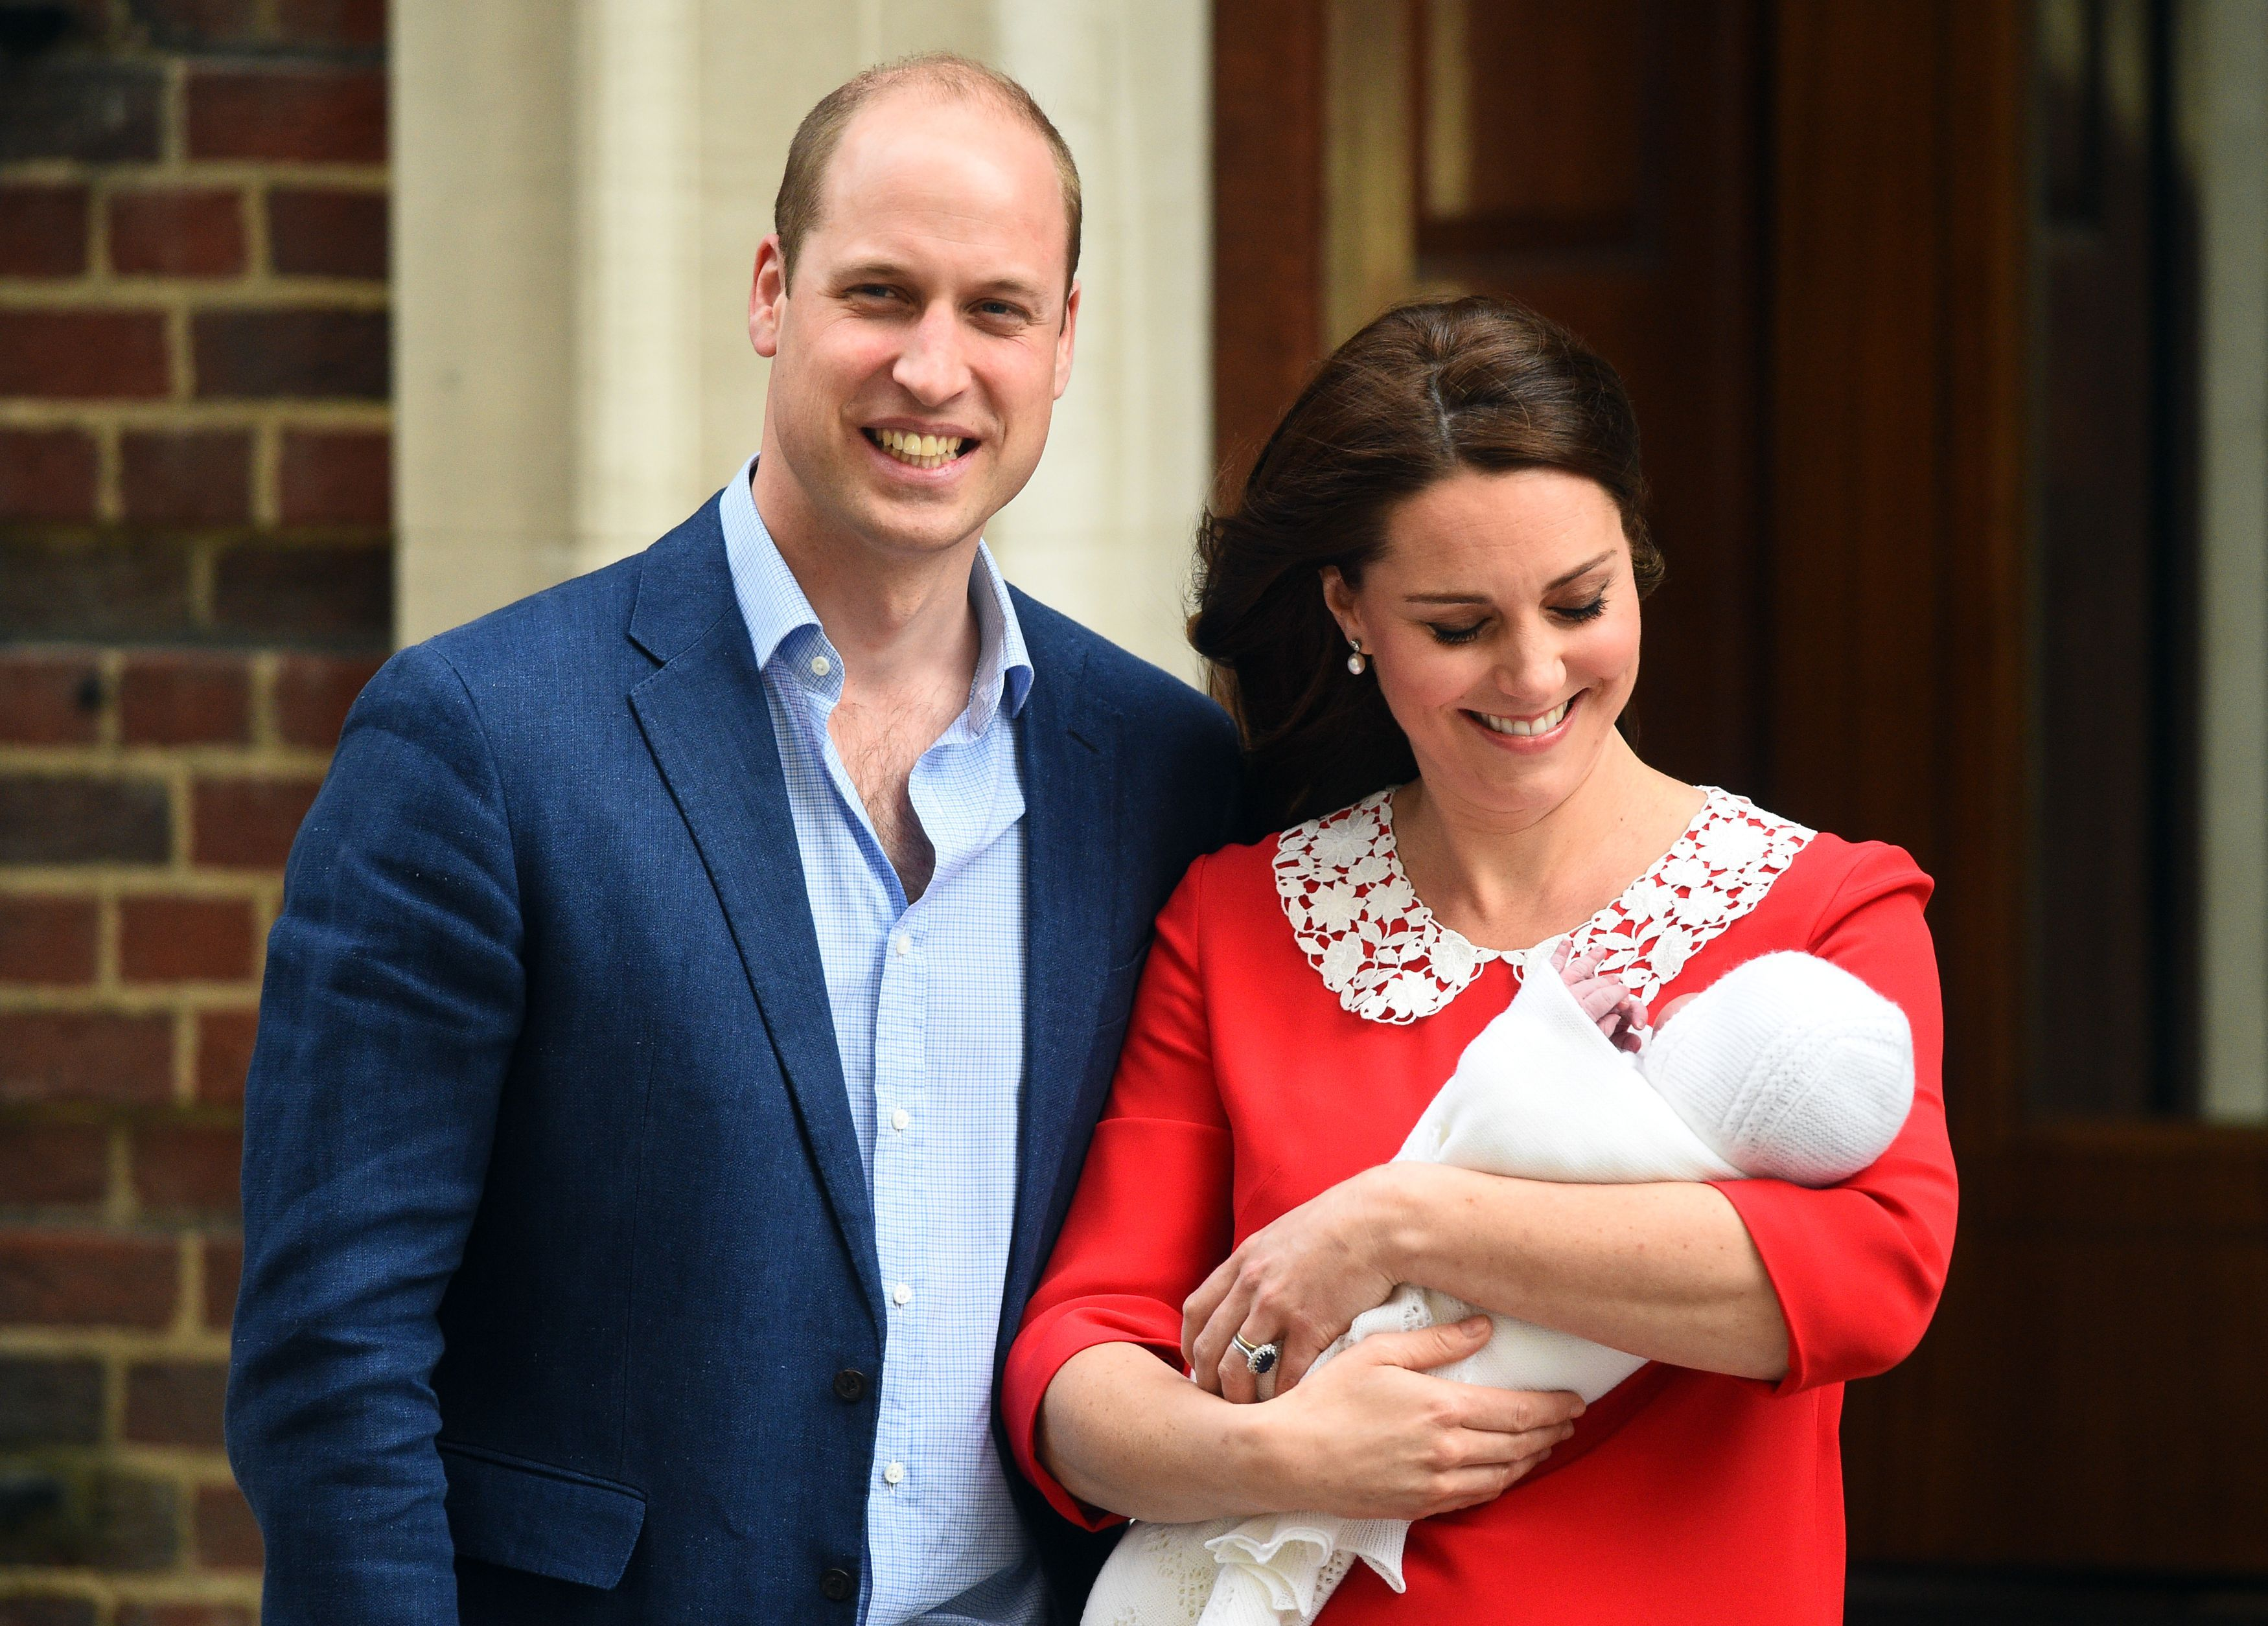 The Duke and Duchess of Cambridge and their newborn son.